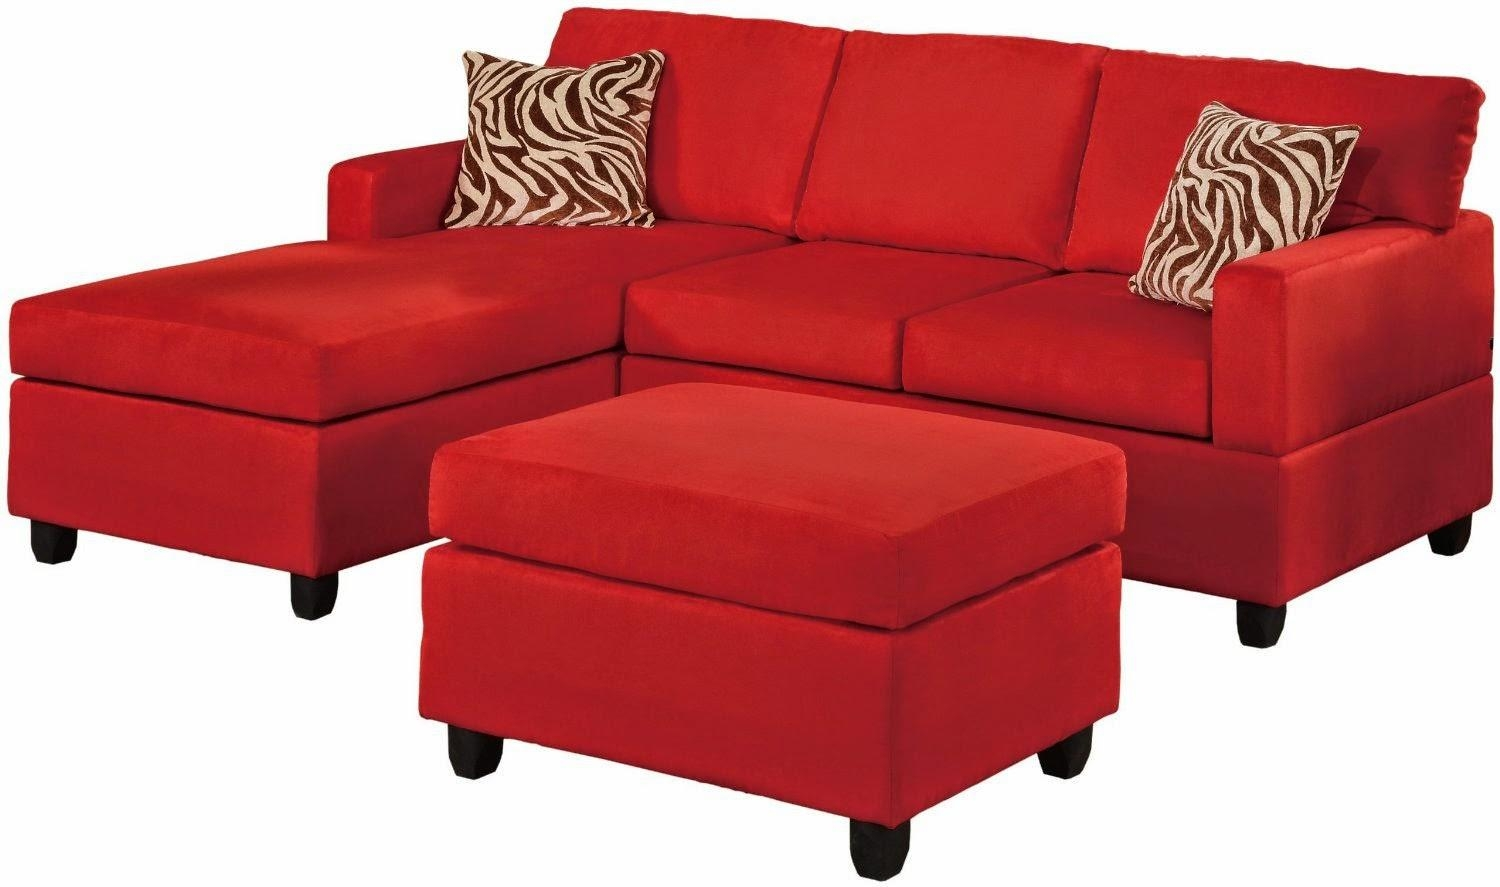 Red Sectional Sofas Cheap | Centerfieldbar Within Red Microfiber Sectional Sofas (Image 15 of 21)